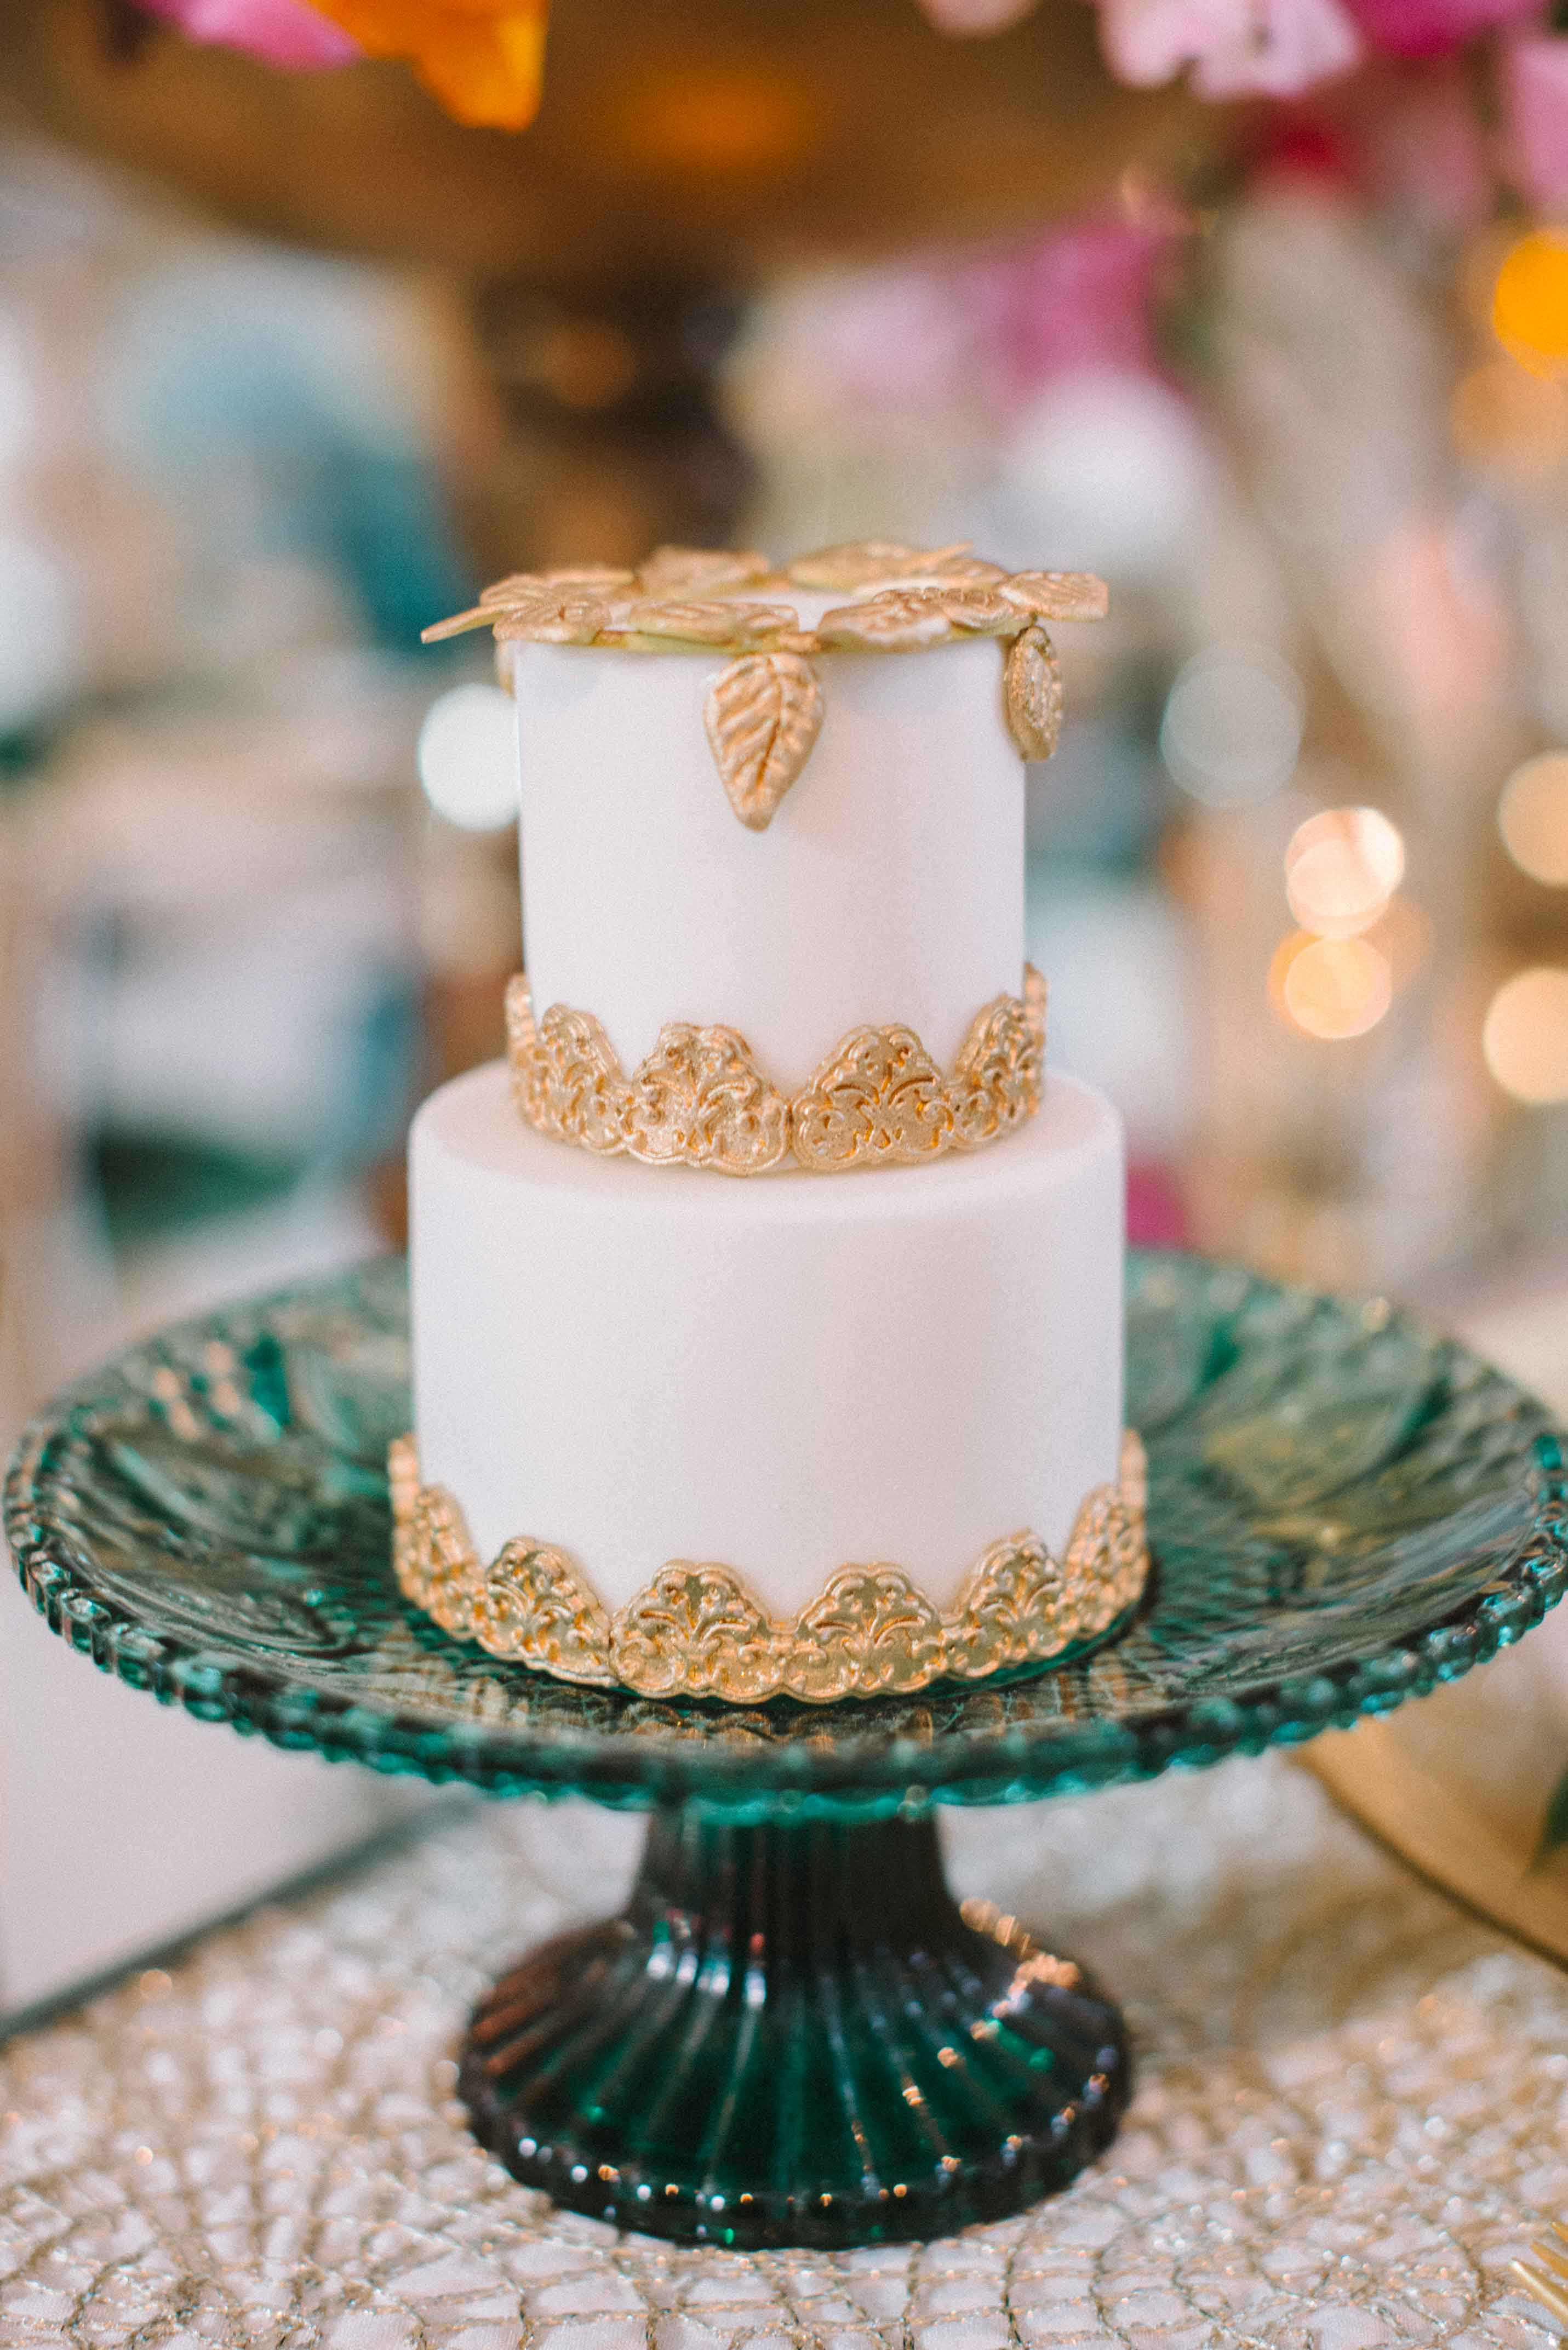 Mini cake for every guest on small tiny cake stand wedding cake ideas place setting